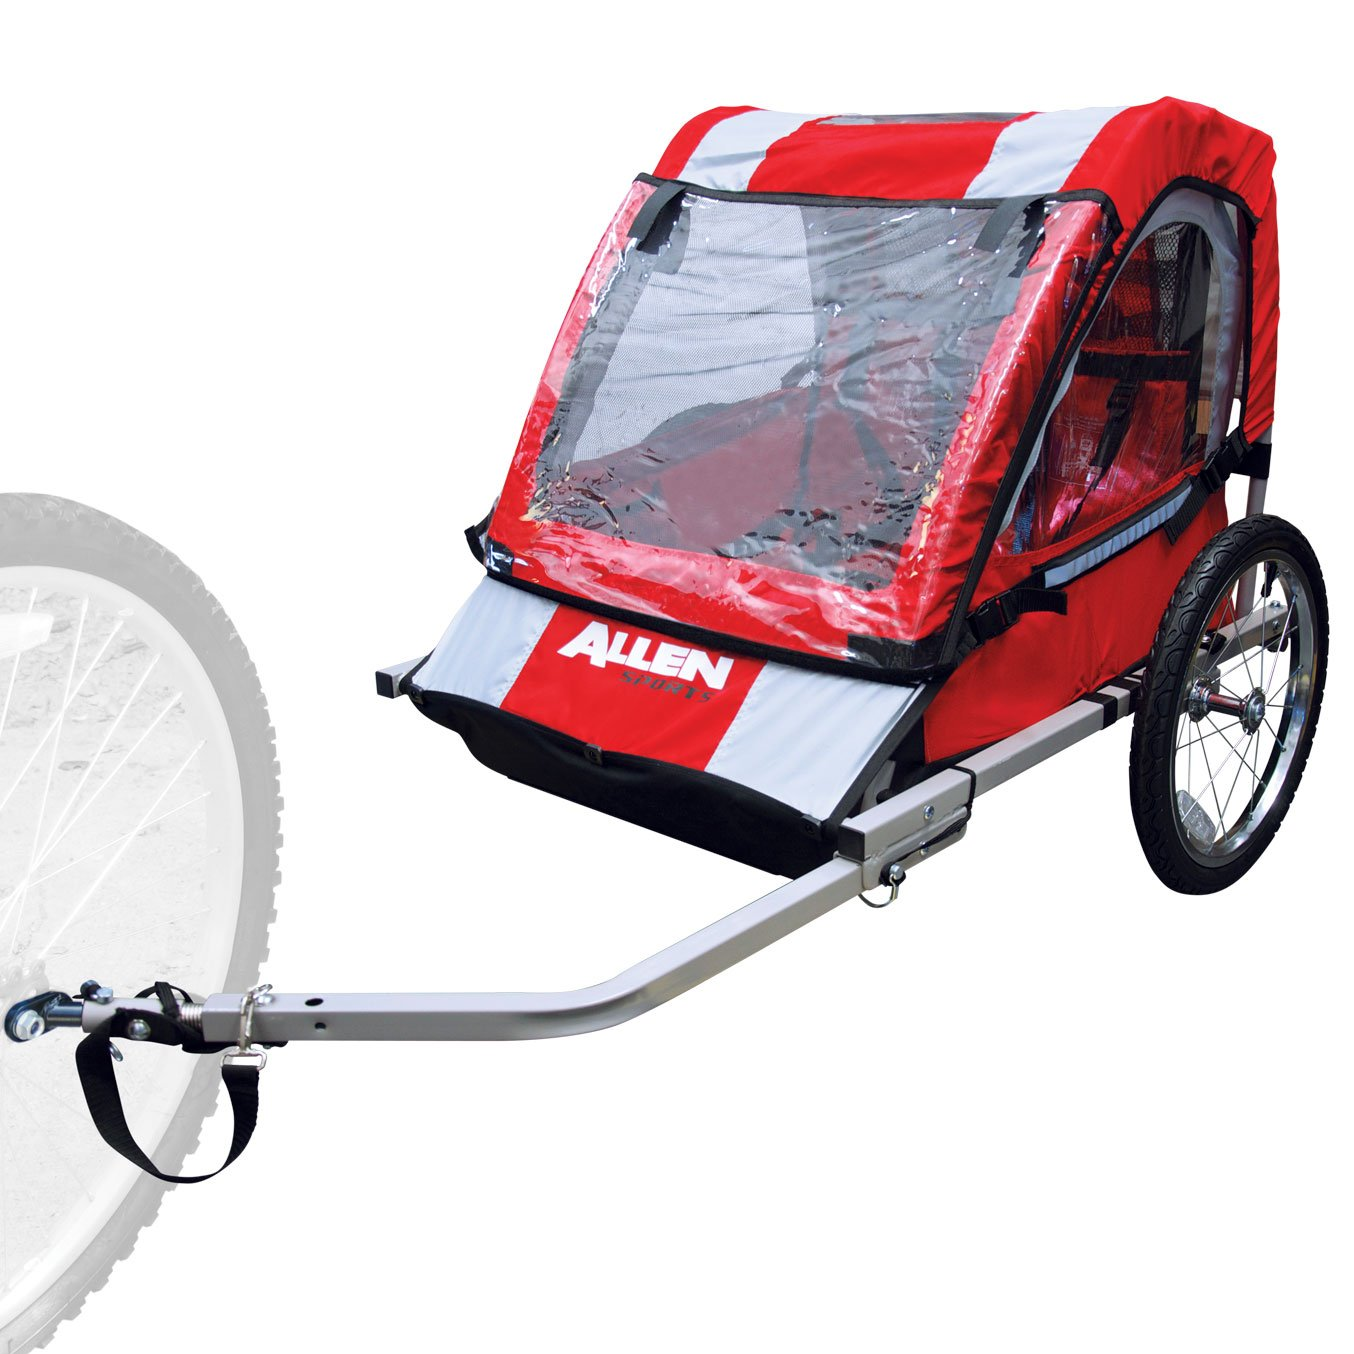 Top 10 Best Bike Trailers For Kids Reviews 2019 2020 On